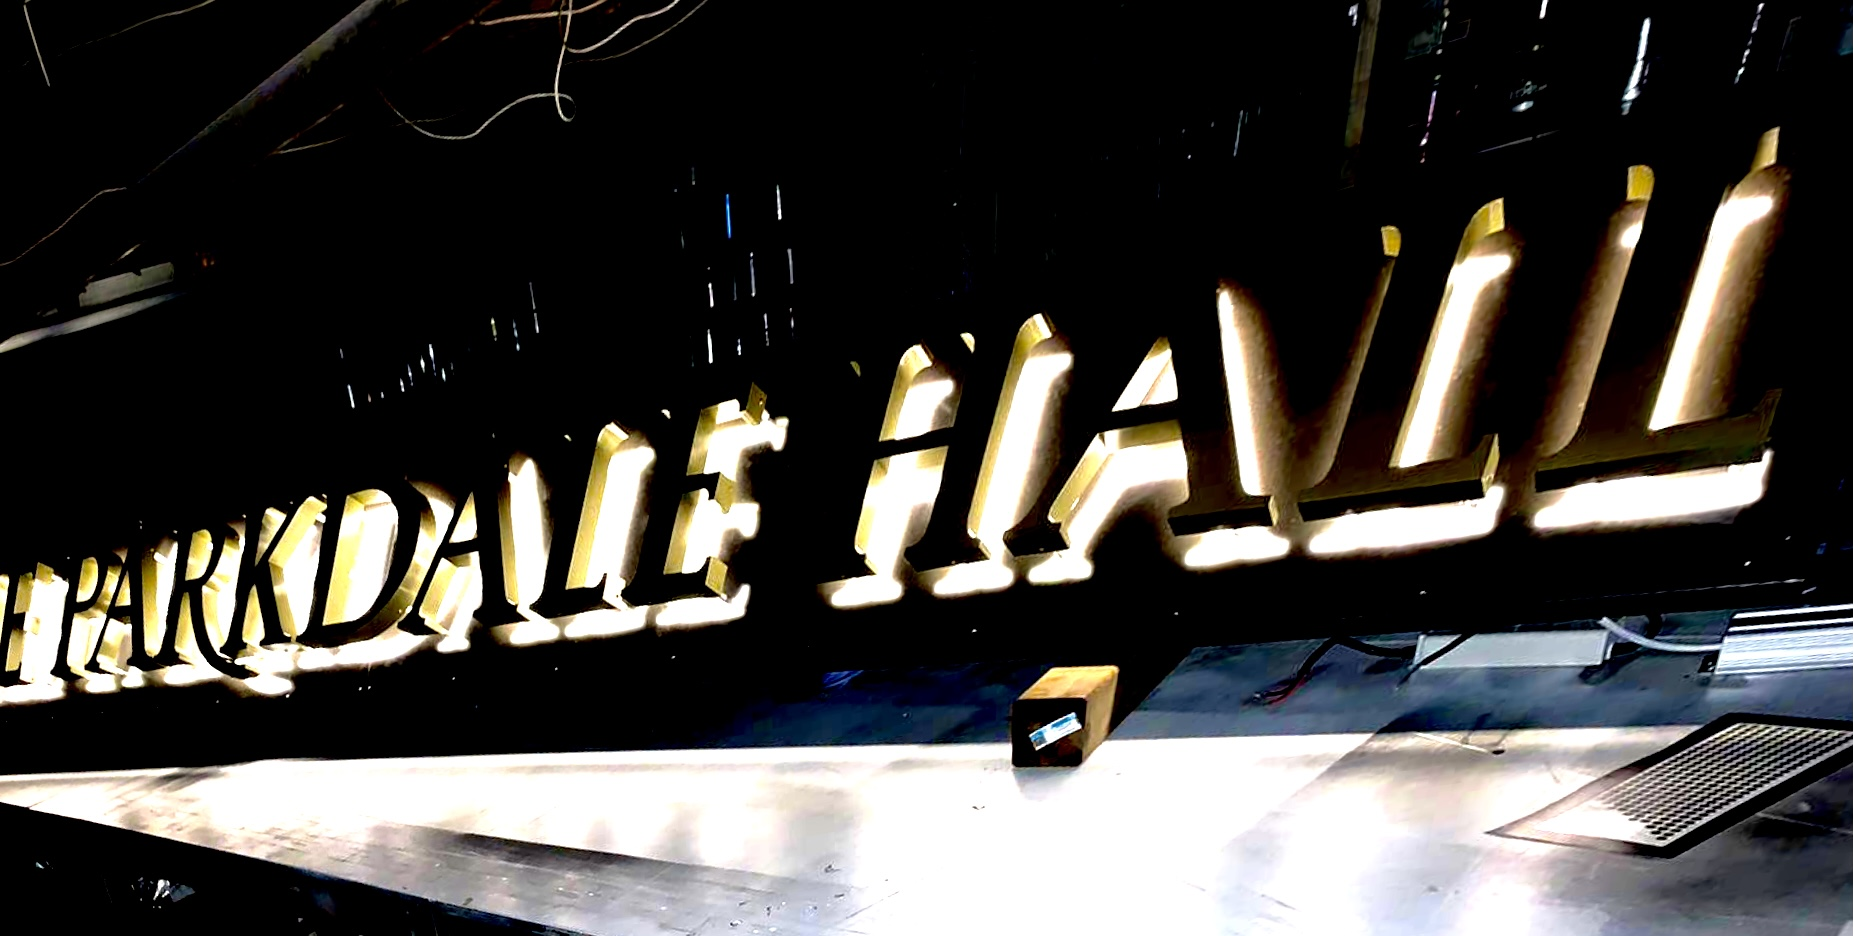 Parkdale Hall Signs by Signarama Toronto